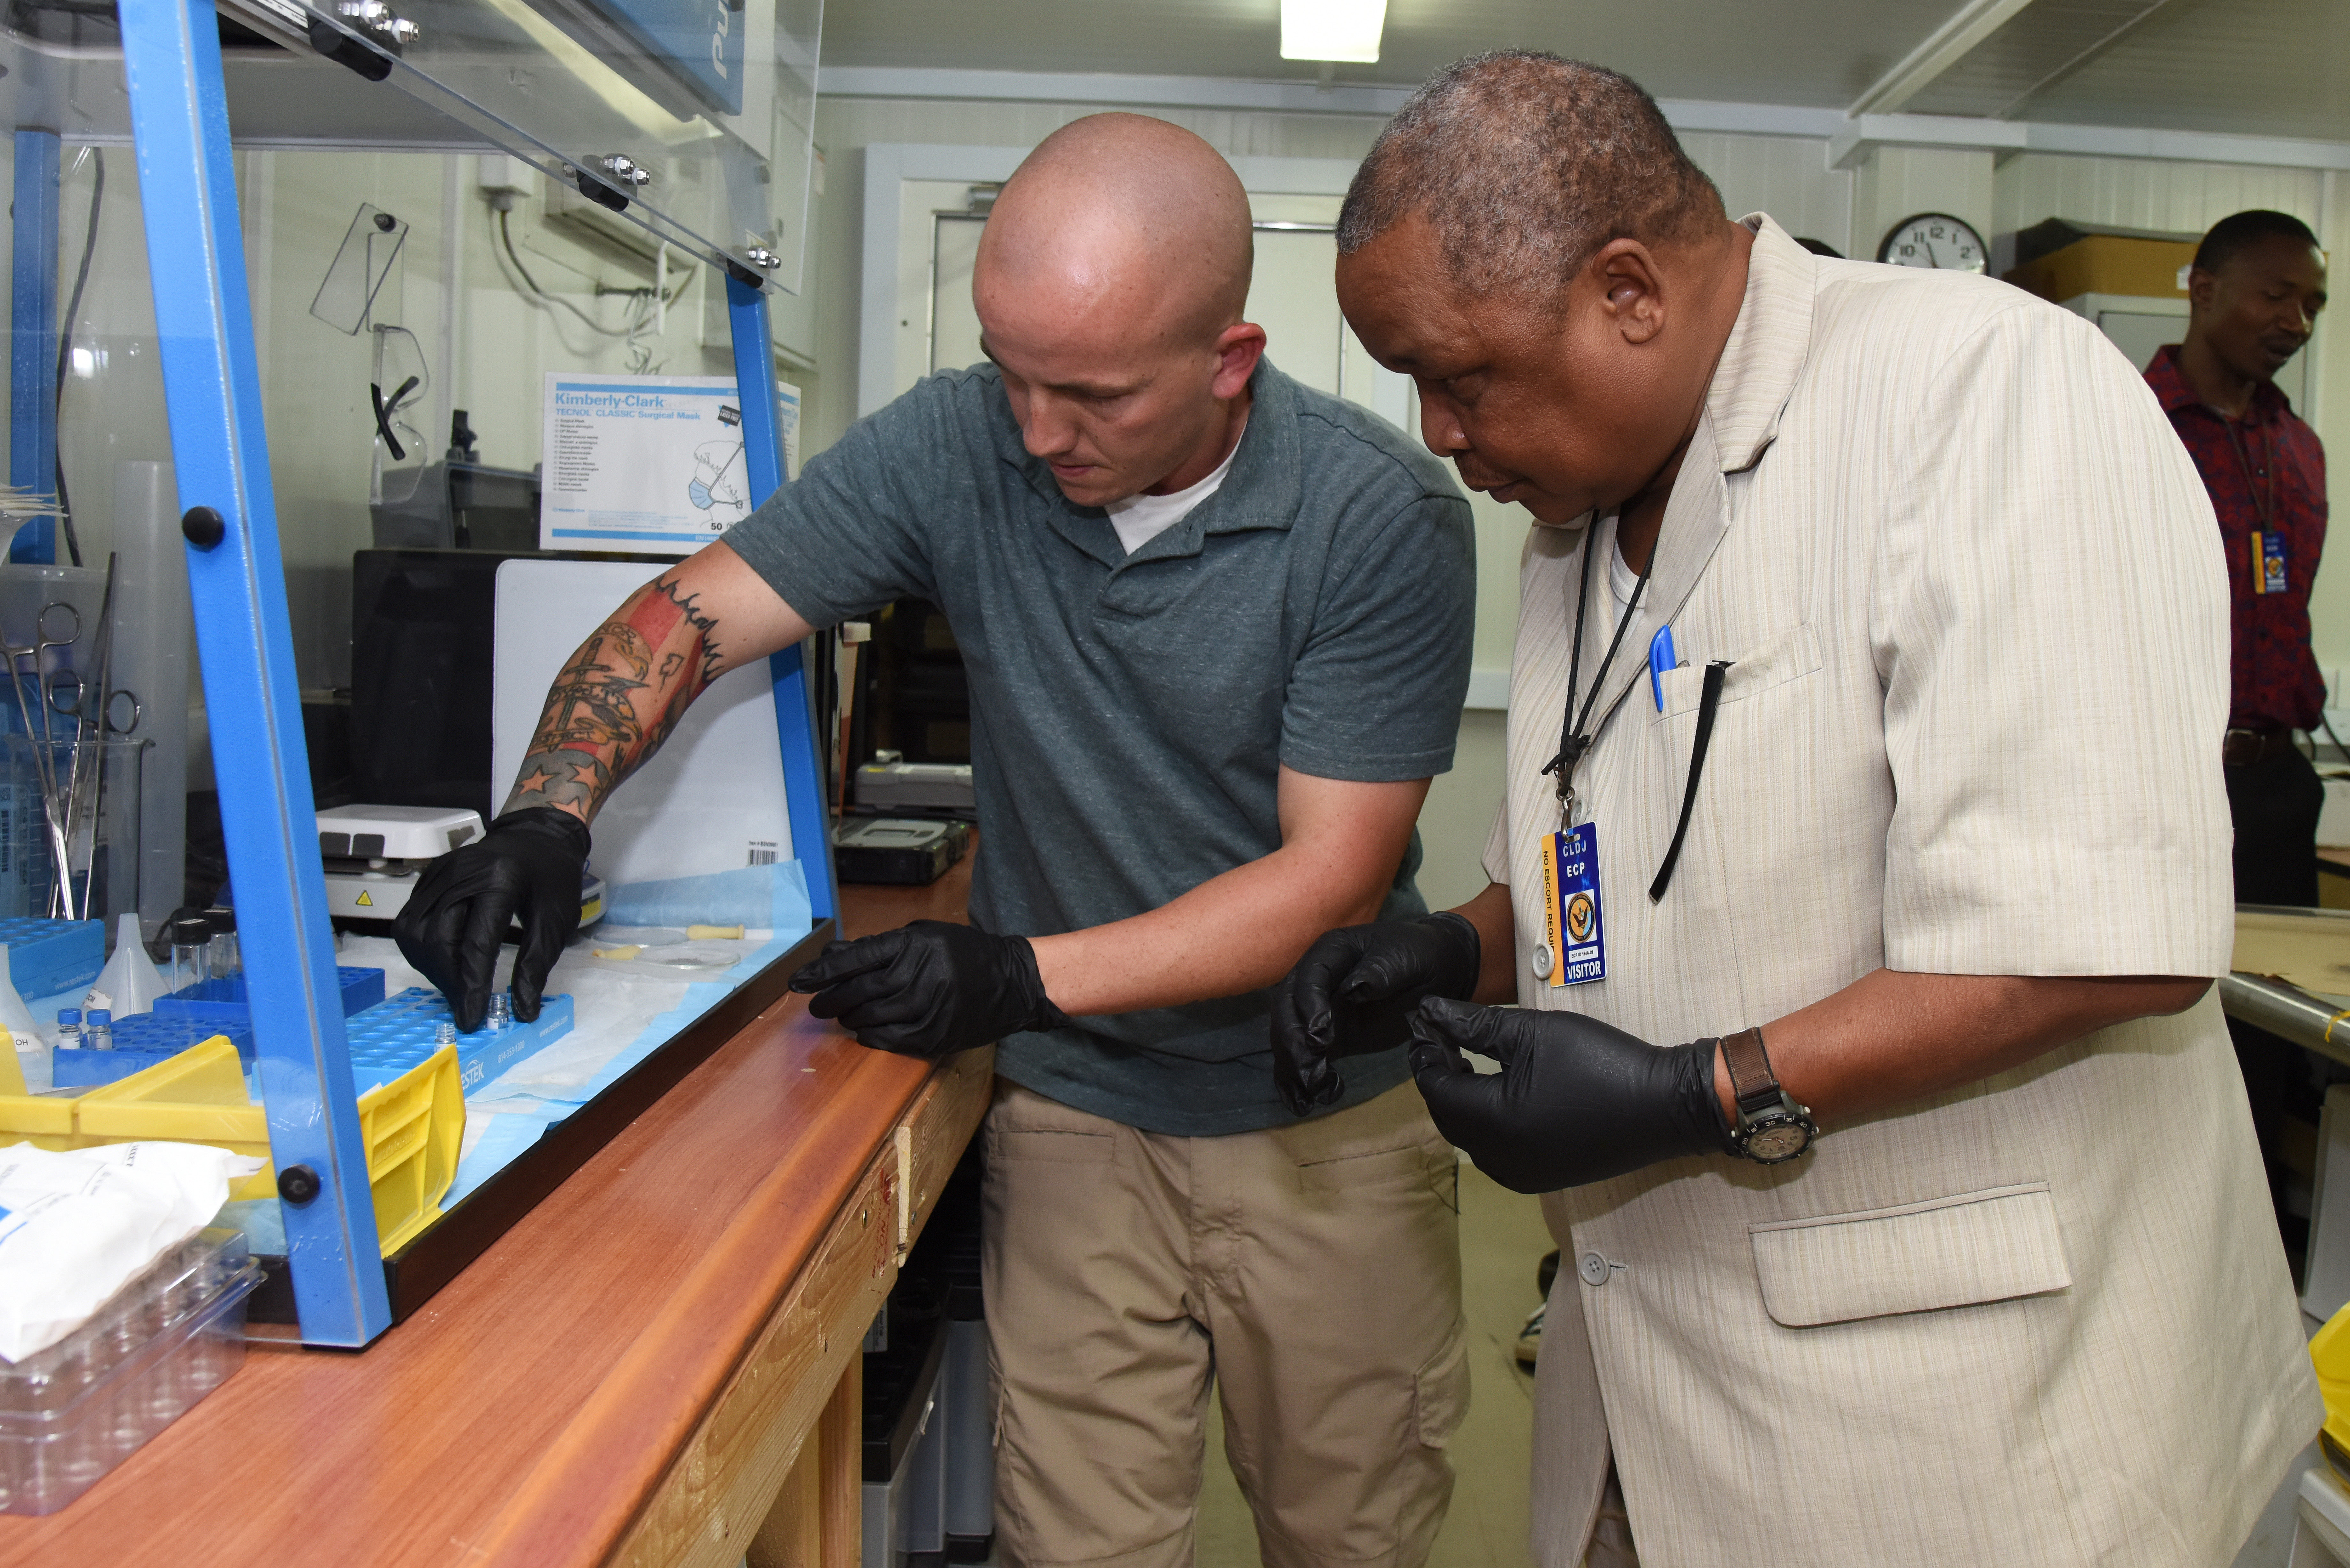 U.S. Army Staff Sgt. Walter Duncan (left), Joint Theater Forensic Analysis Center case manager, demonstrates how to set up samples for the Gas Chromatography Mass Spectrometry to Tanzania Defense Force Col. Abulrasul Ali Fupi, during a forensics briefing at Camp Lemonnier, Djibouti, June 23, 2015.  The JTFAC team uses GC/MS to identify different substances within a test sample. It can be used to aid with drug detection, fire investigation, explosives investigation, and identification of unknown samples.  (U.S. Air Force photo by Staff Sgt. Maria Bowman)